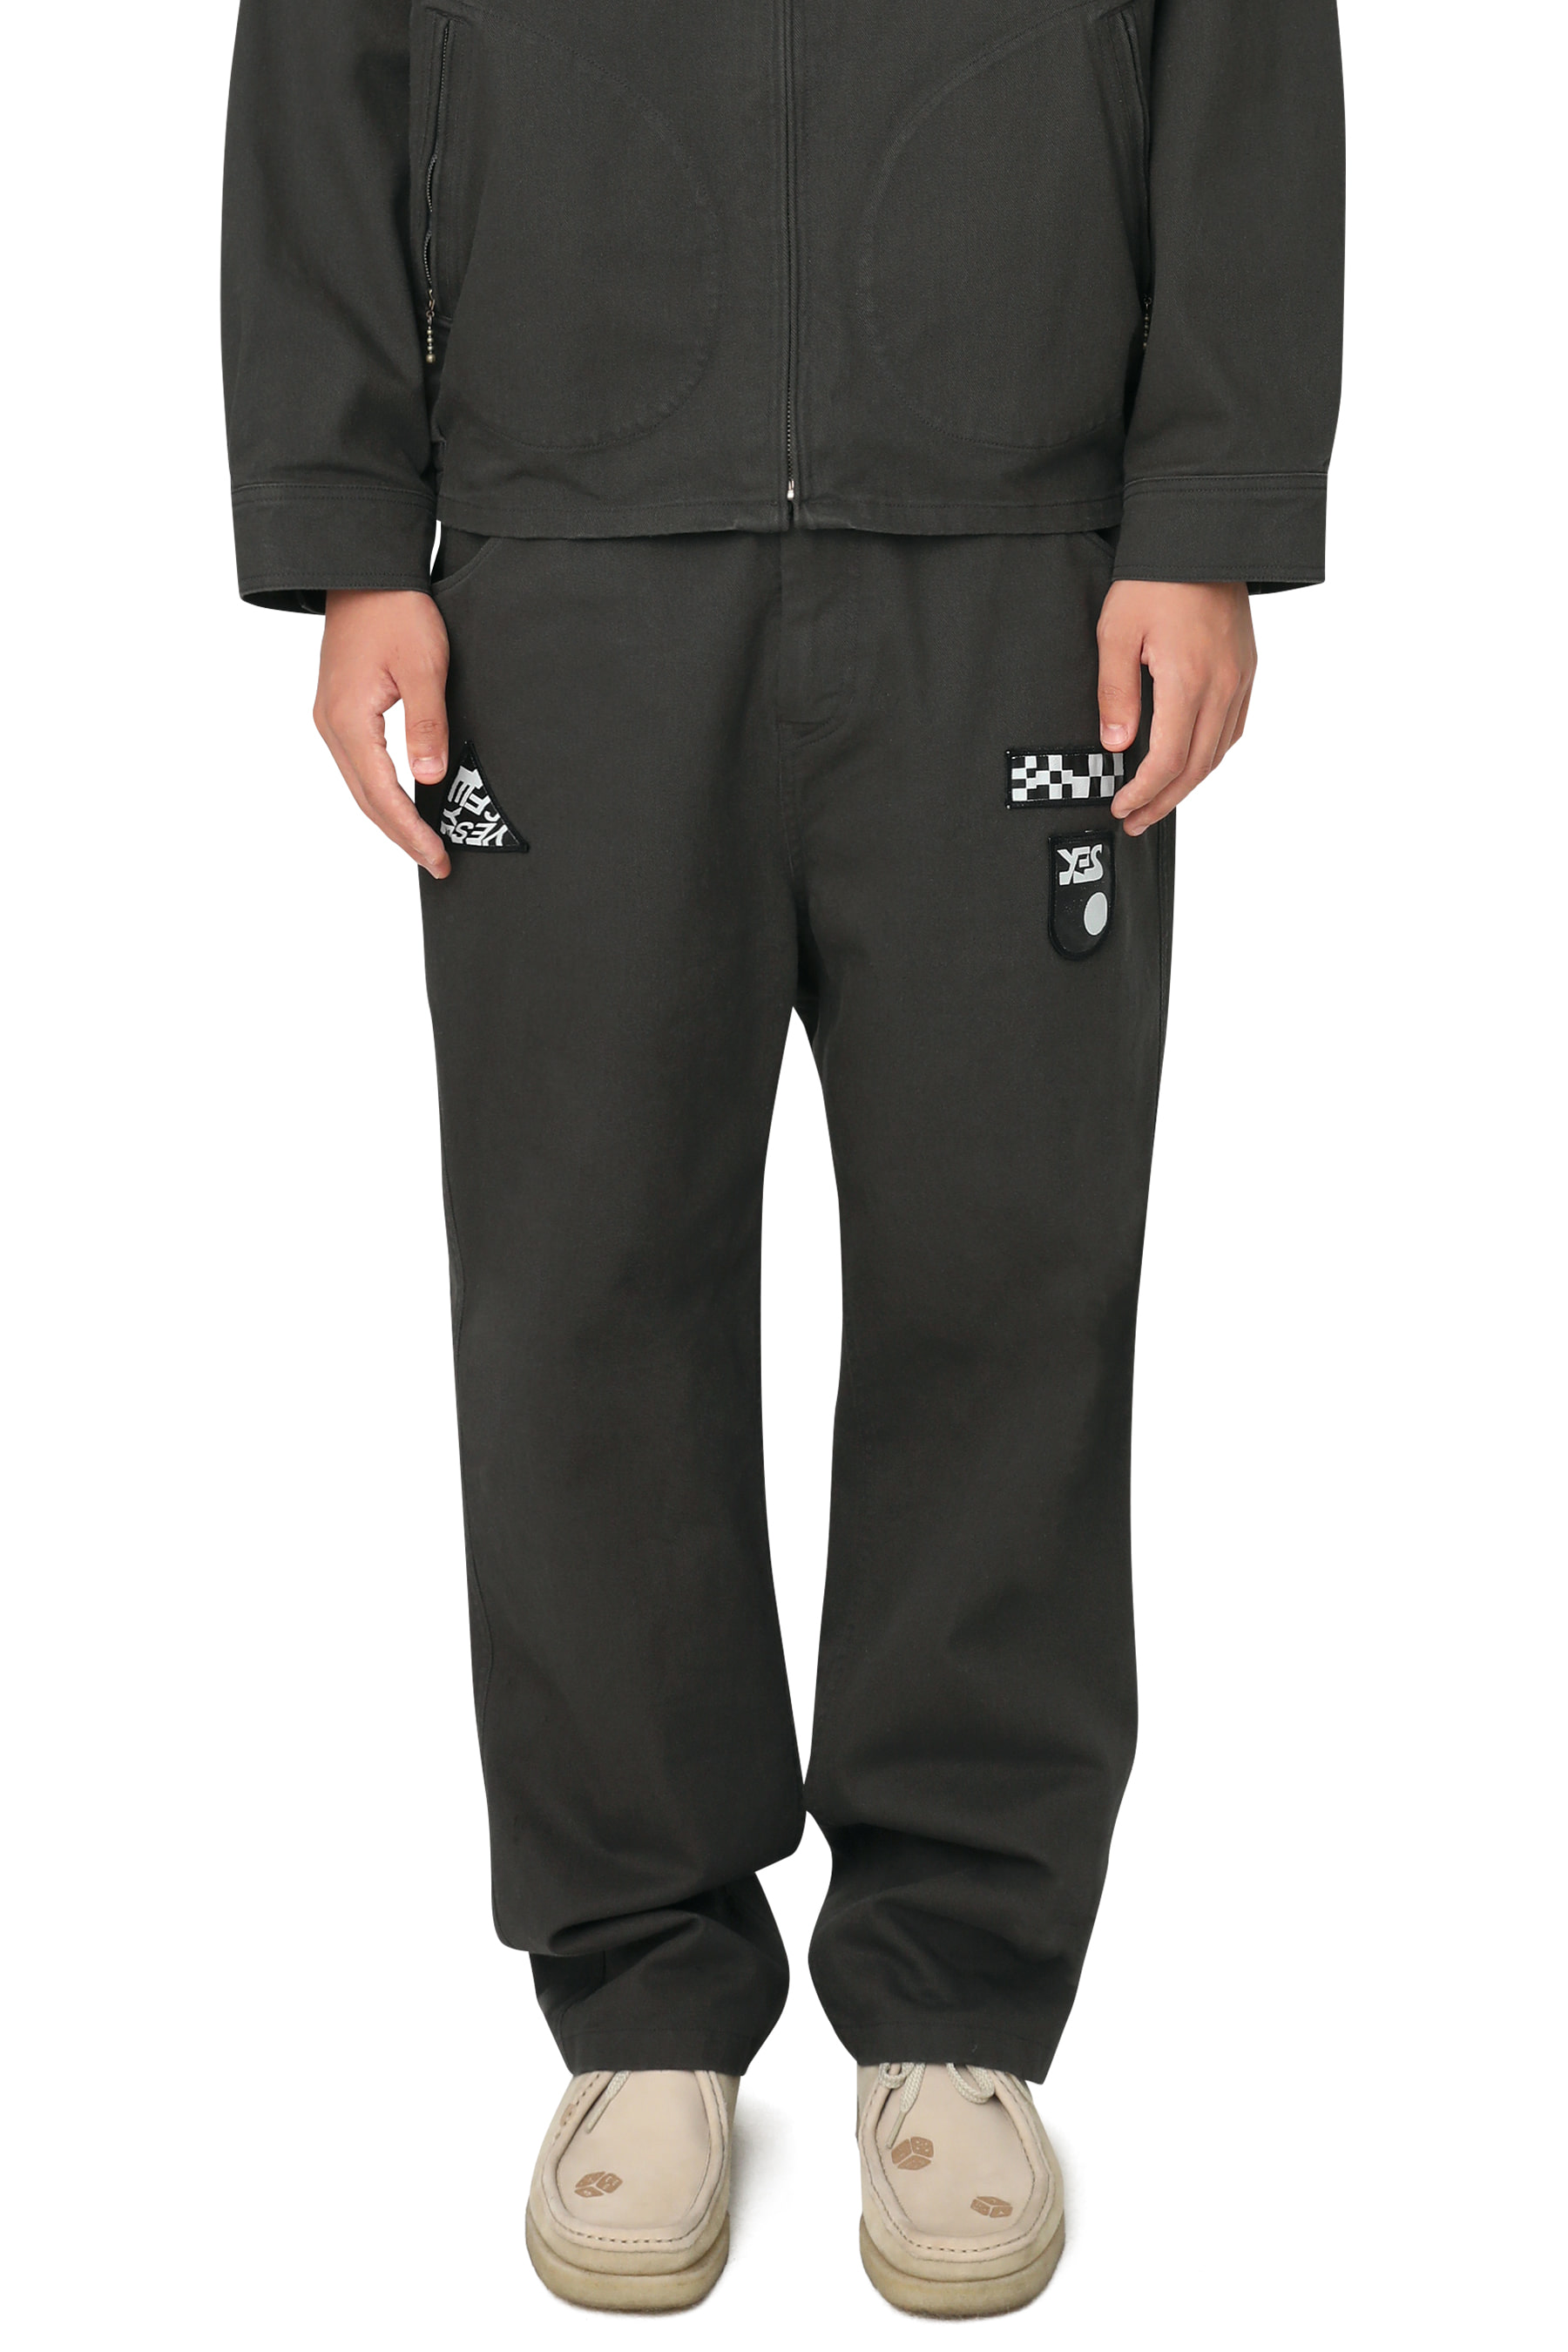 Patched Twill Pants Charcoal